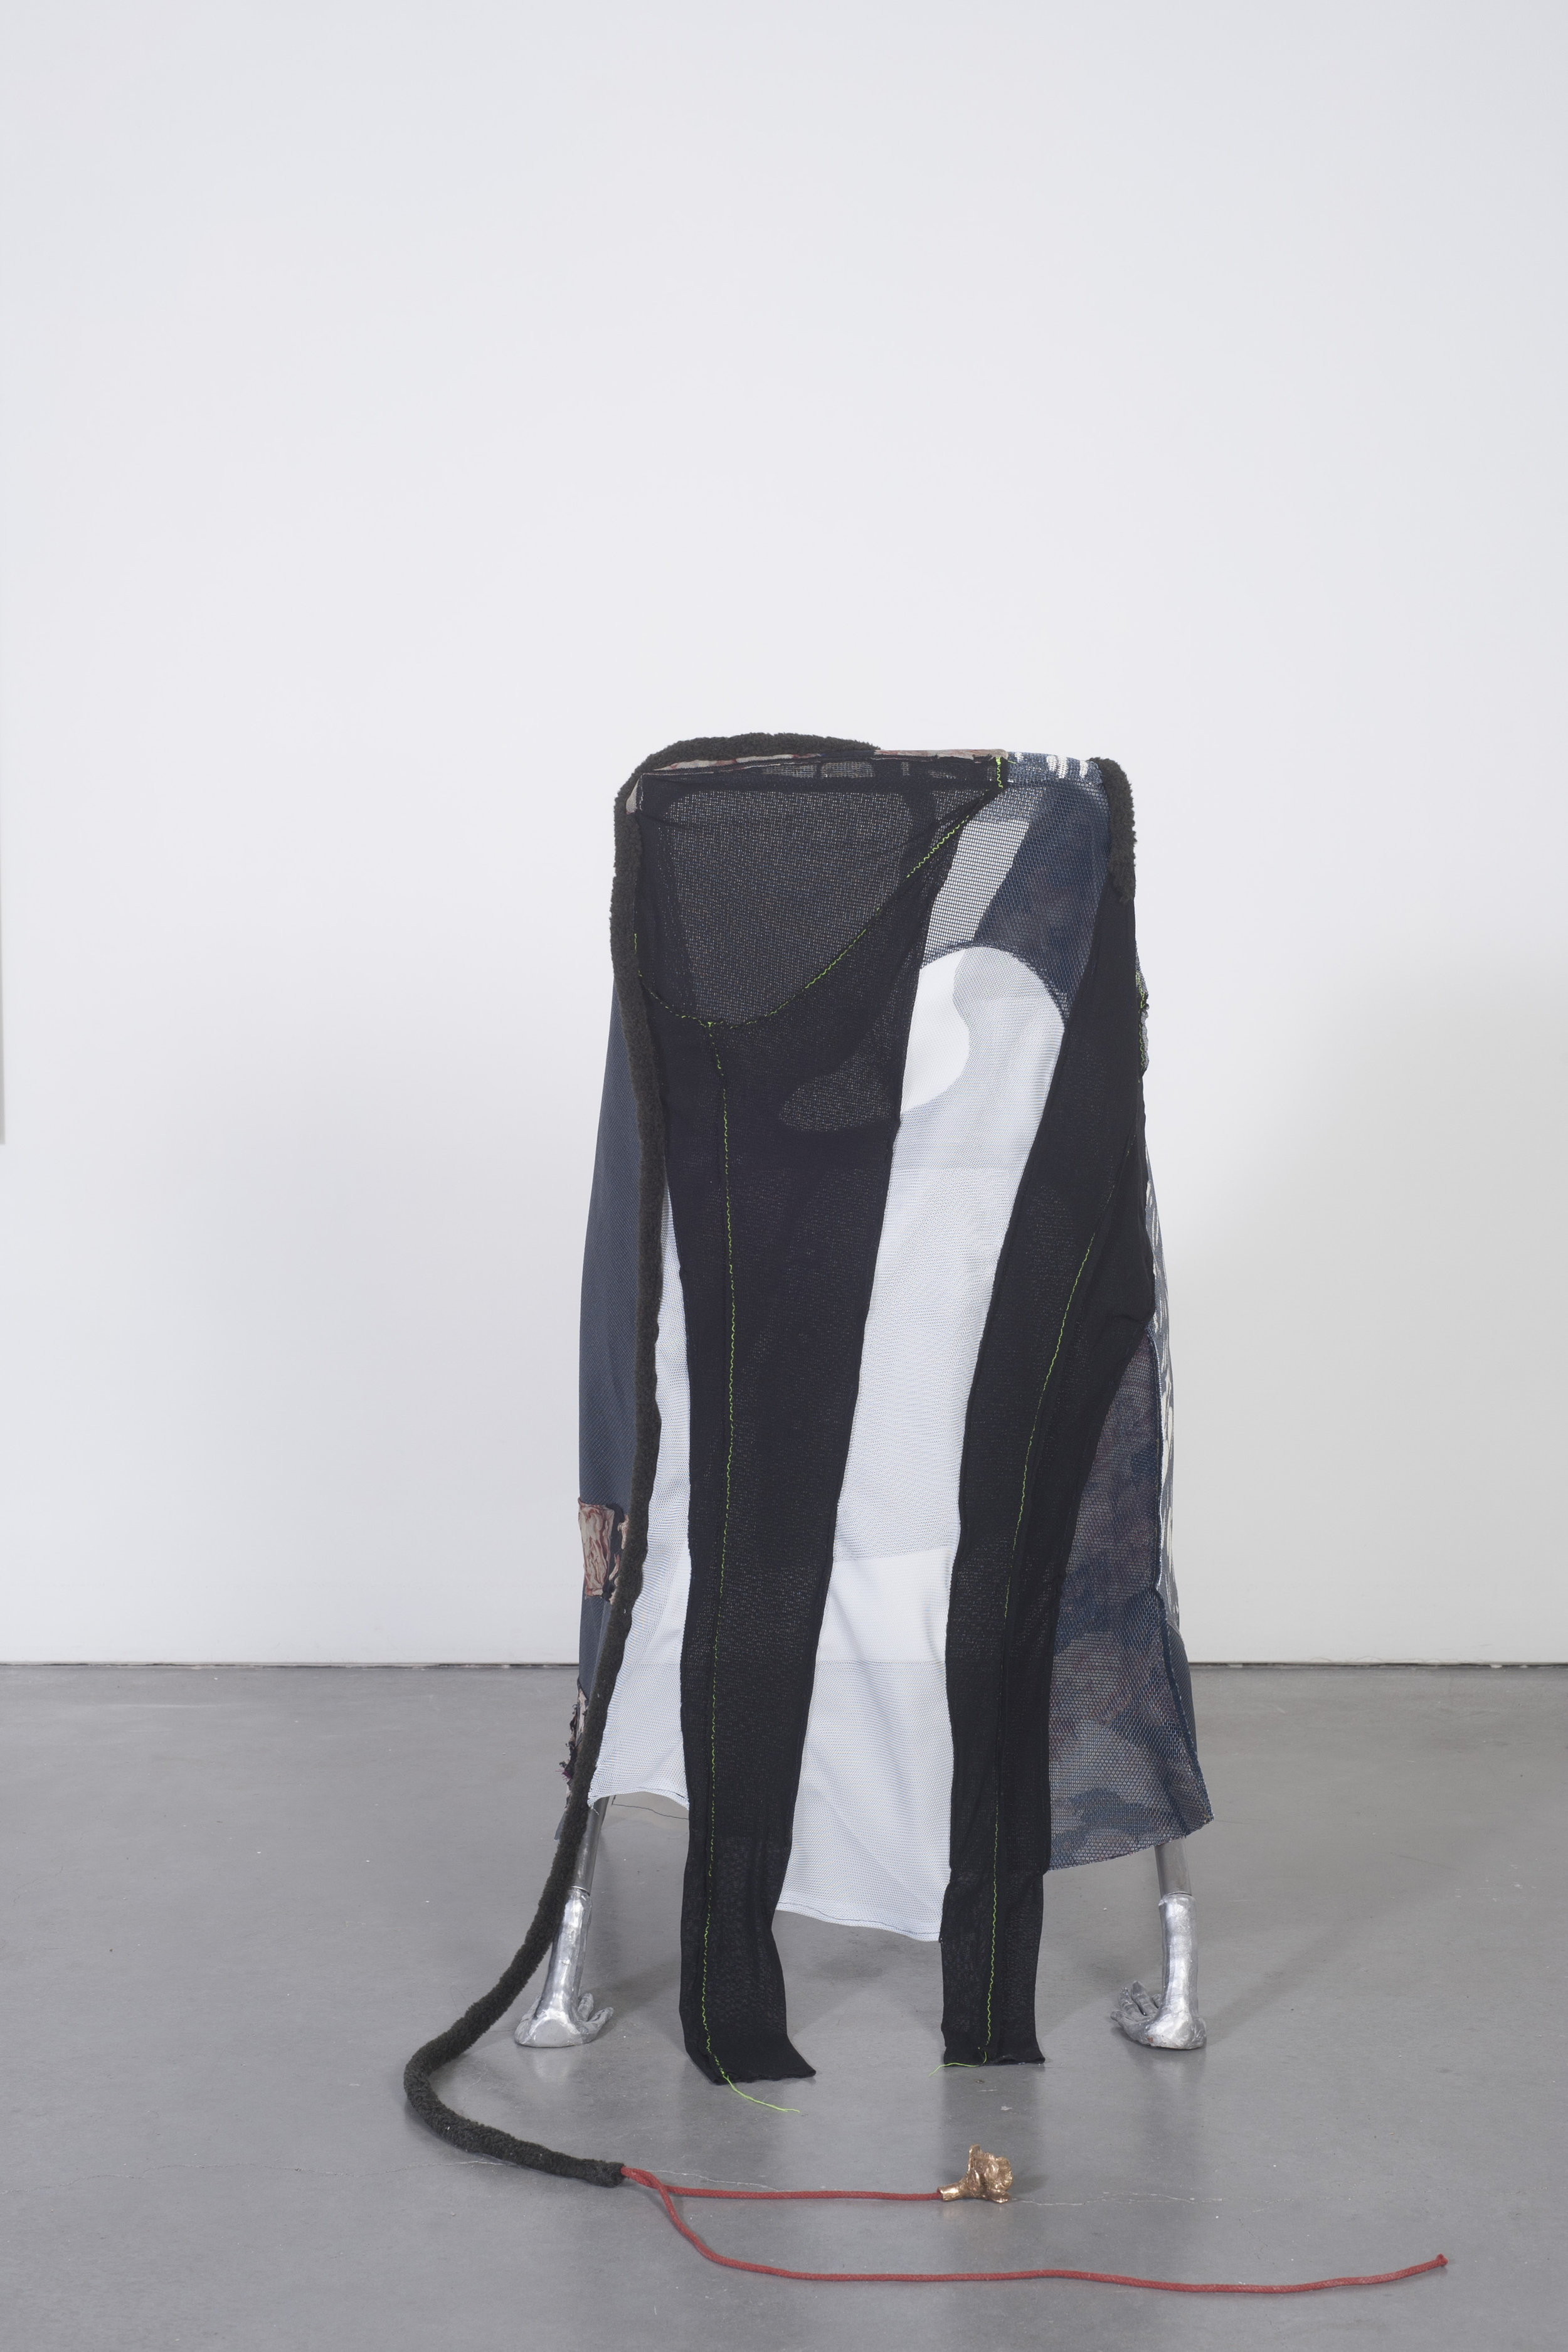 Ellie Hunter,  Trying it on , 2019, Cast aluminum, fabric, chair